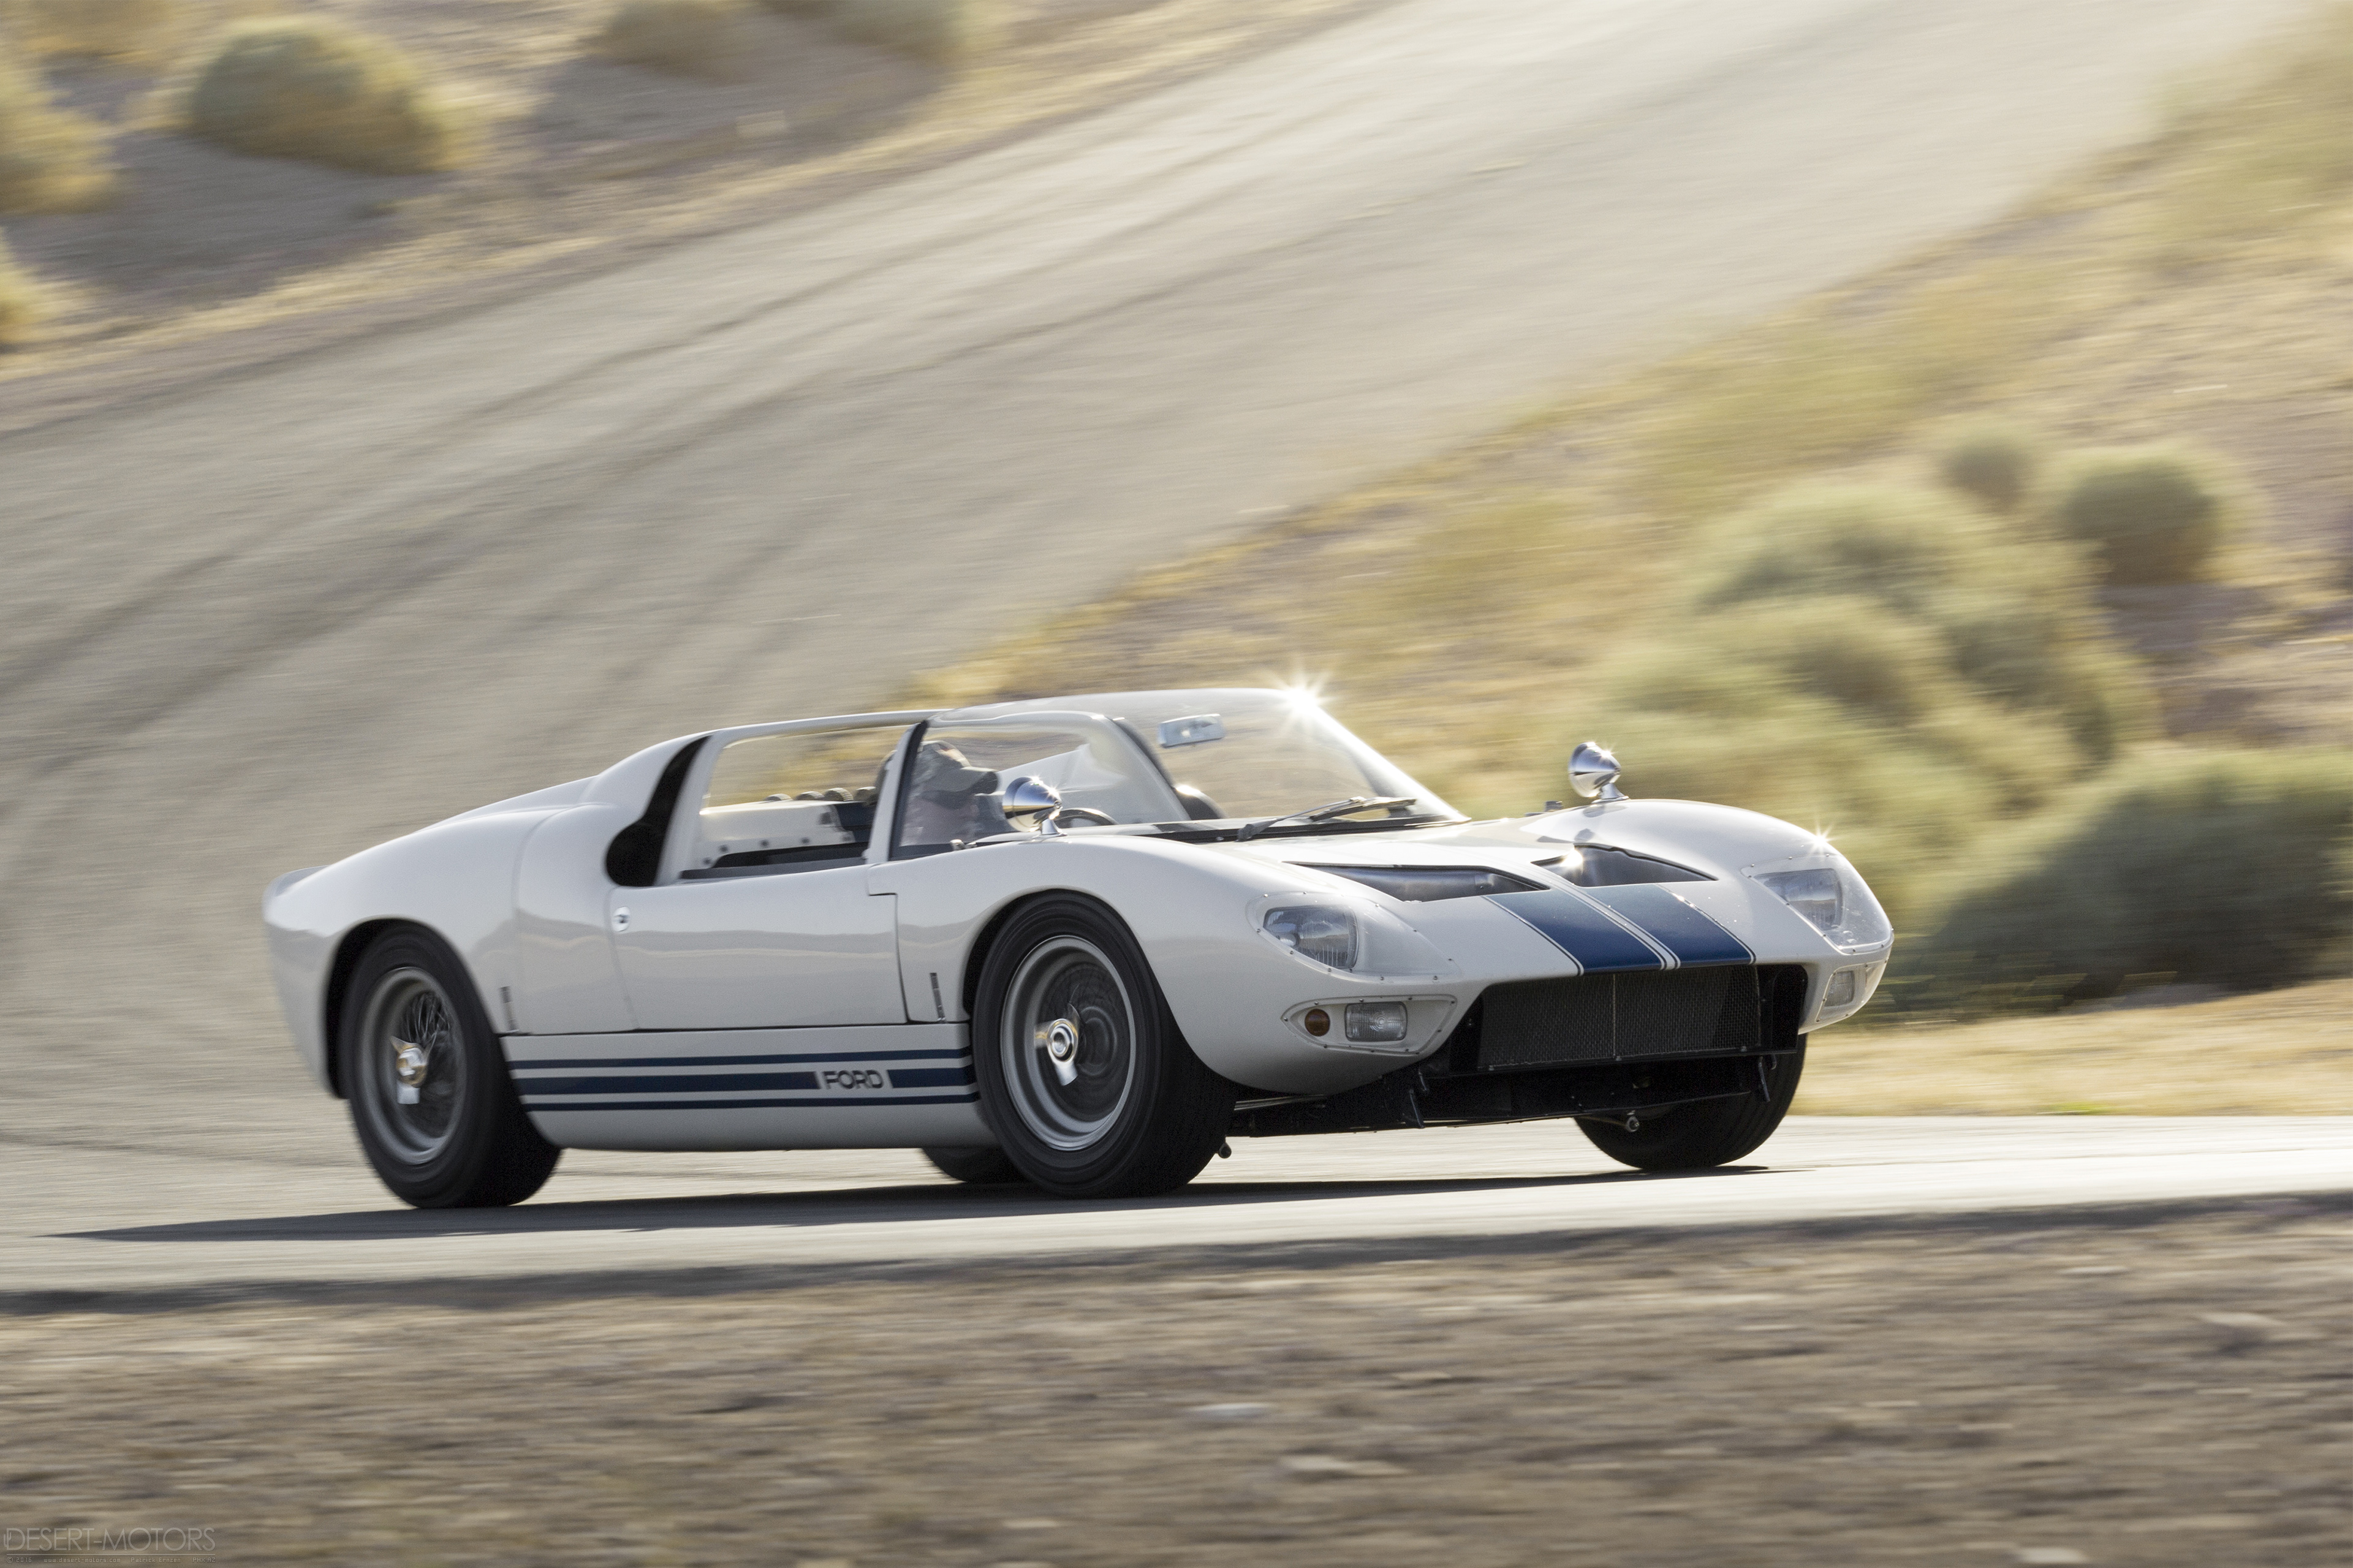 Yet Despite The Greatness Achieved By The Mighty Ford Gt Success Did Not Arrive Overnight As Various Teething Pains Prolonged The Cars Development From